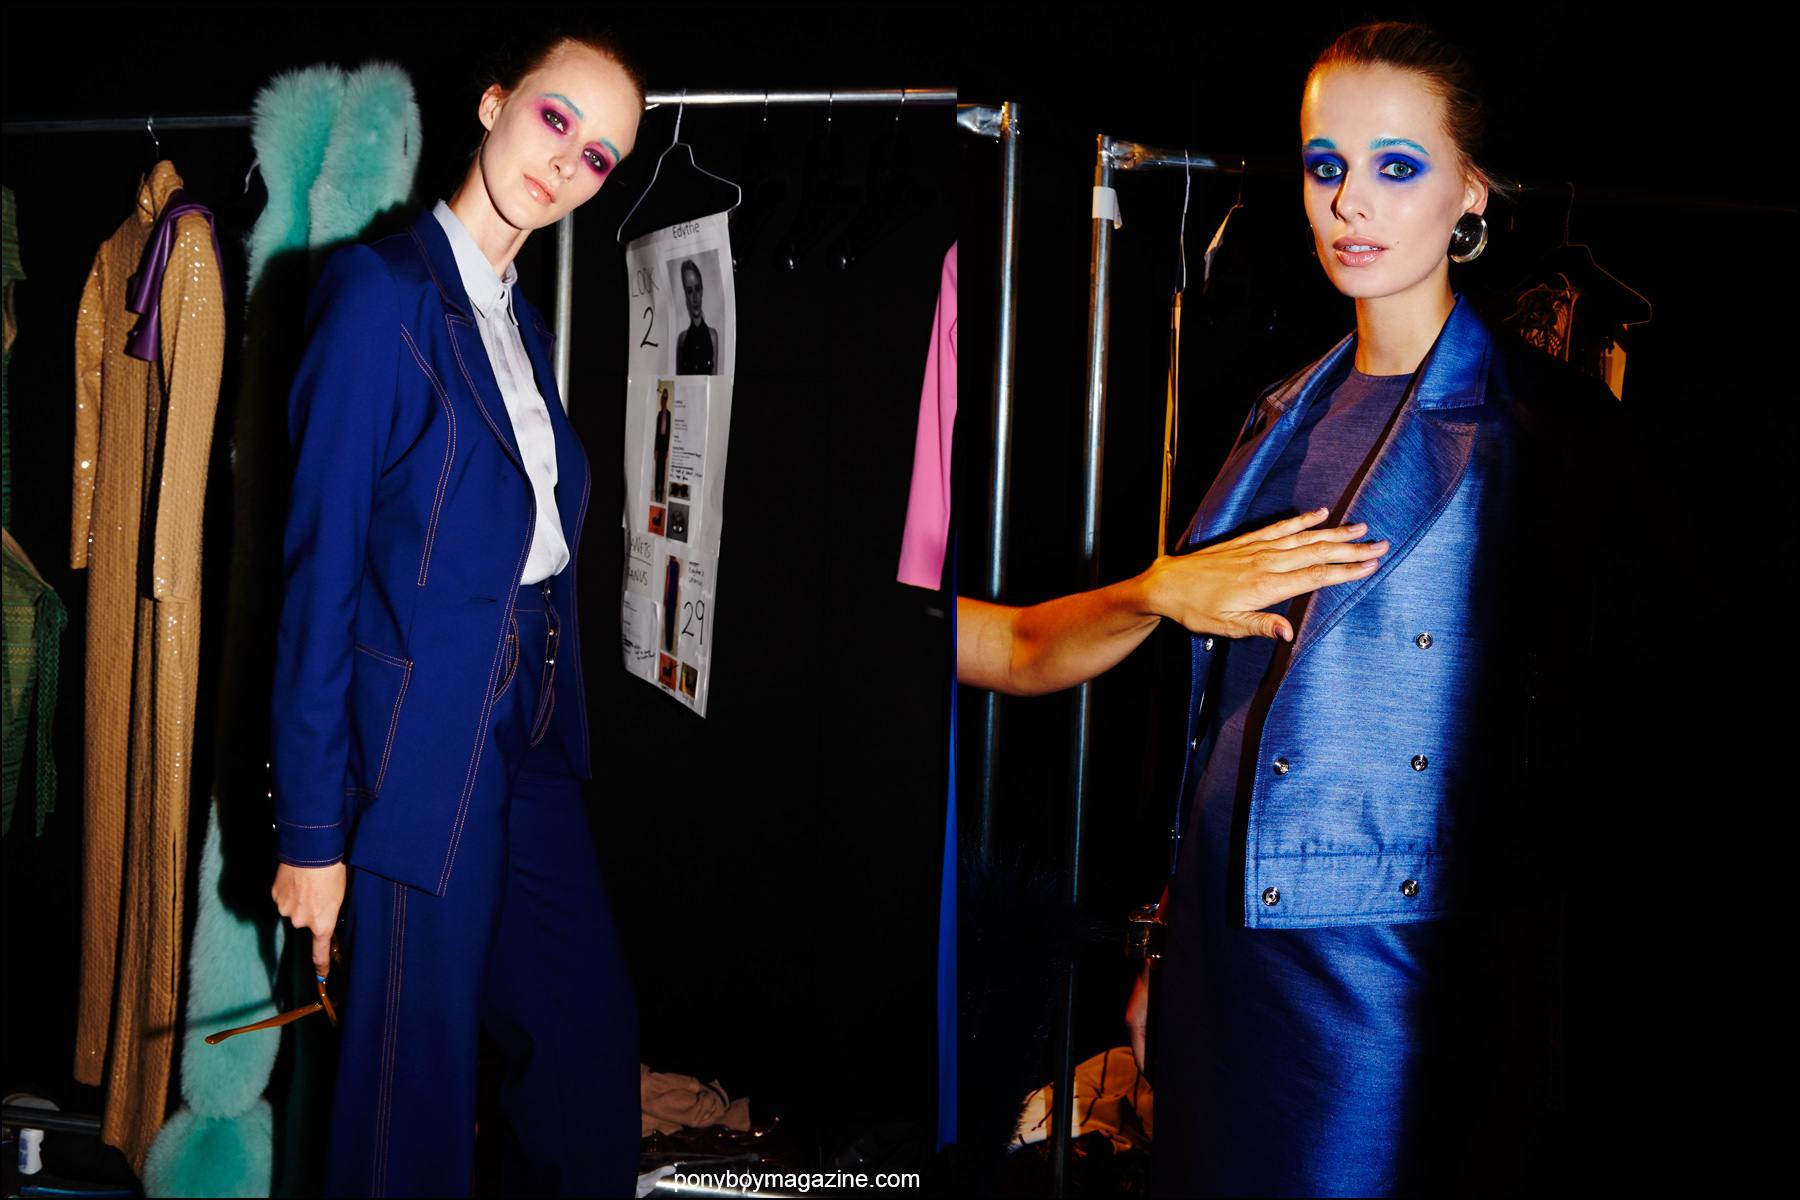 Photographs of models in blue apparel, backstage at the Georgine Spring/Summer 2016 womenswear collection. Photography by Alexander Thompson for Ponyboy magazine NY.